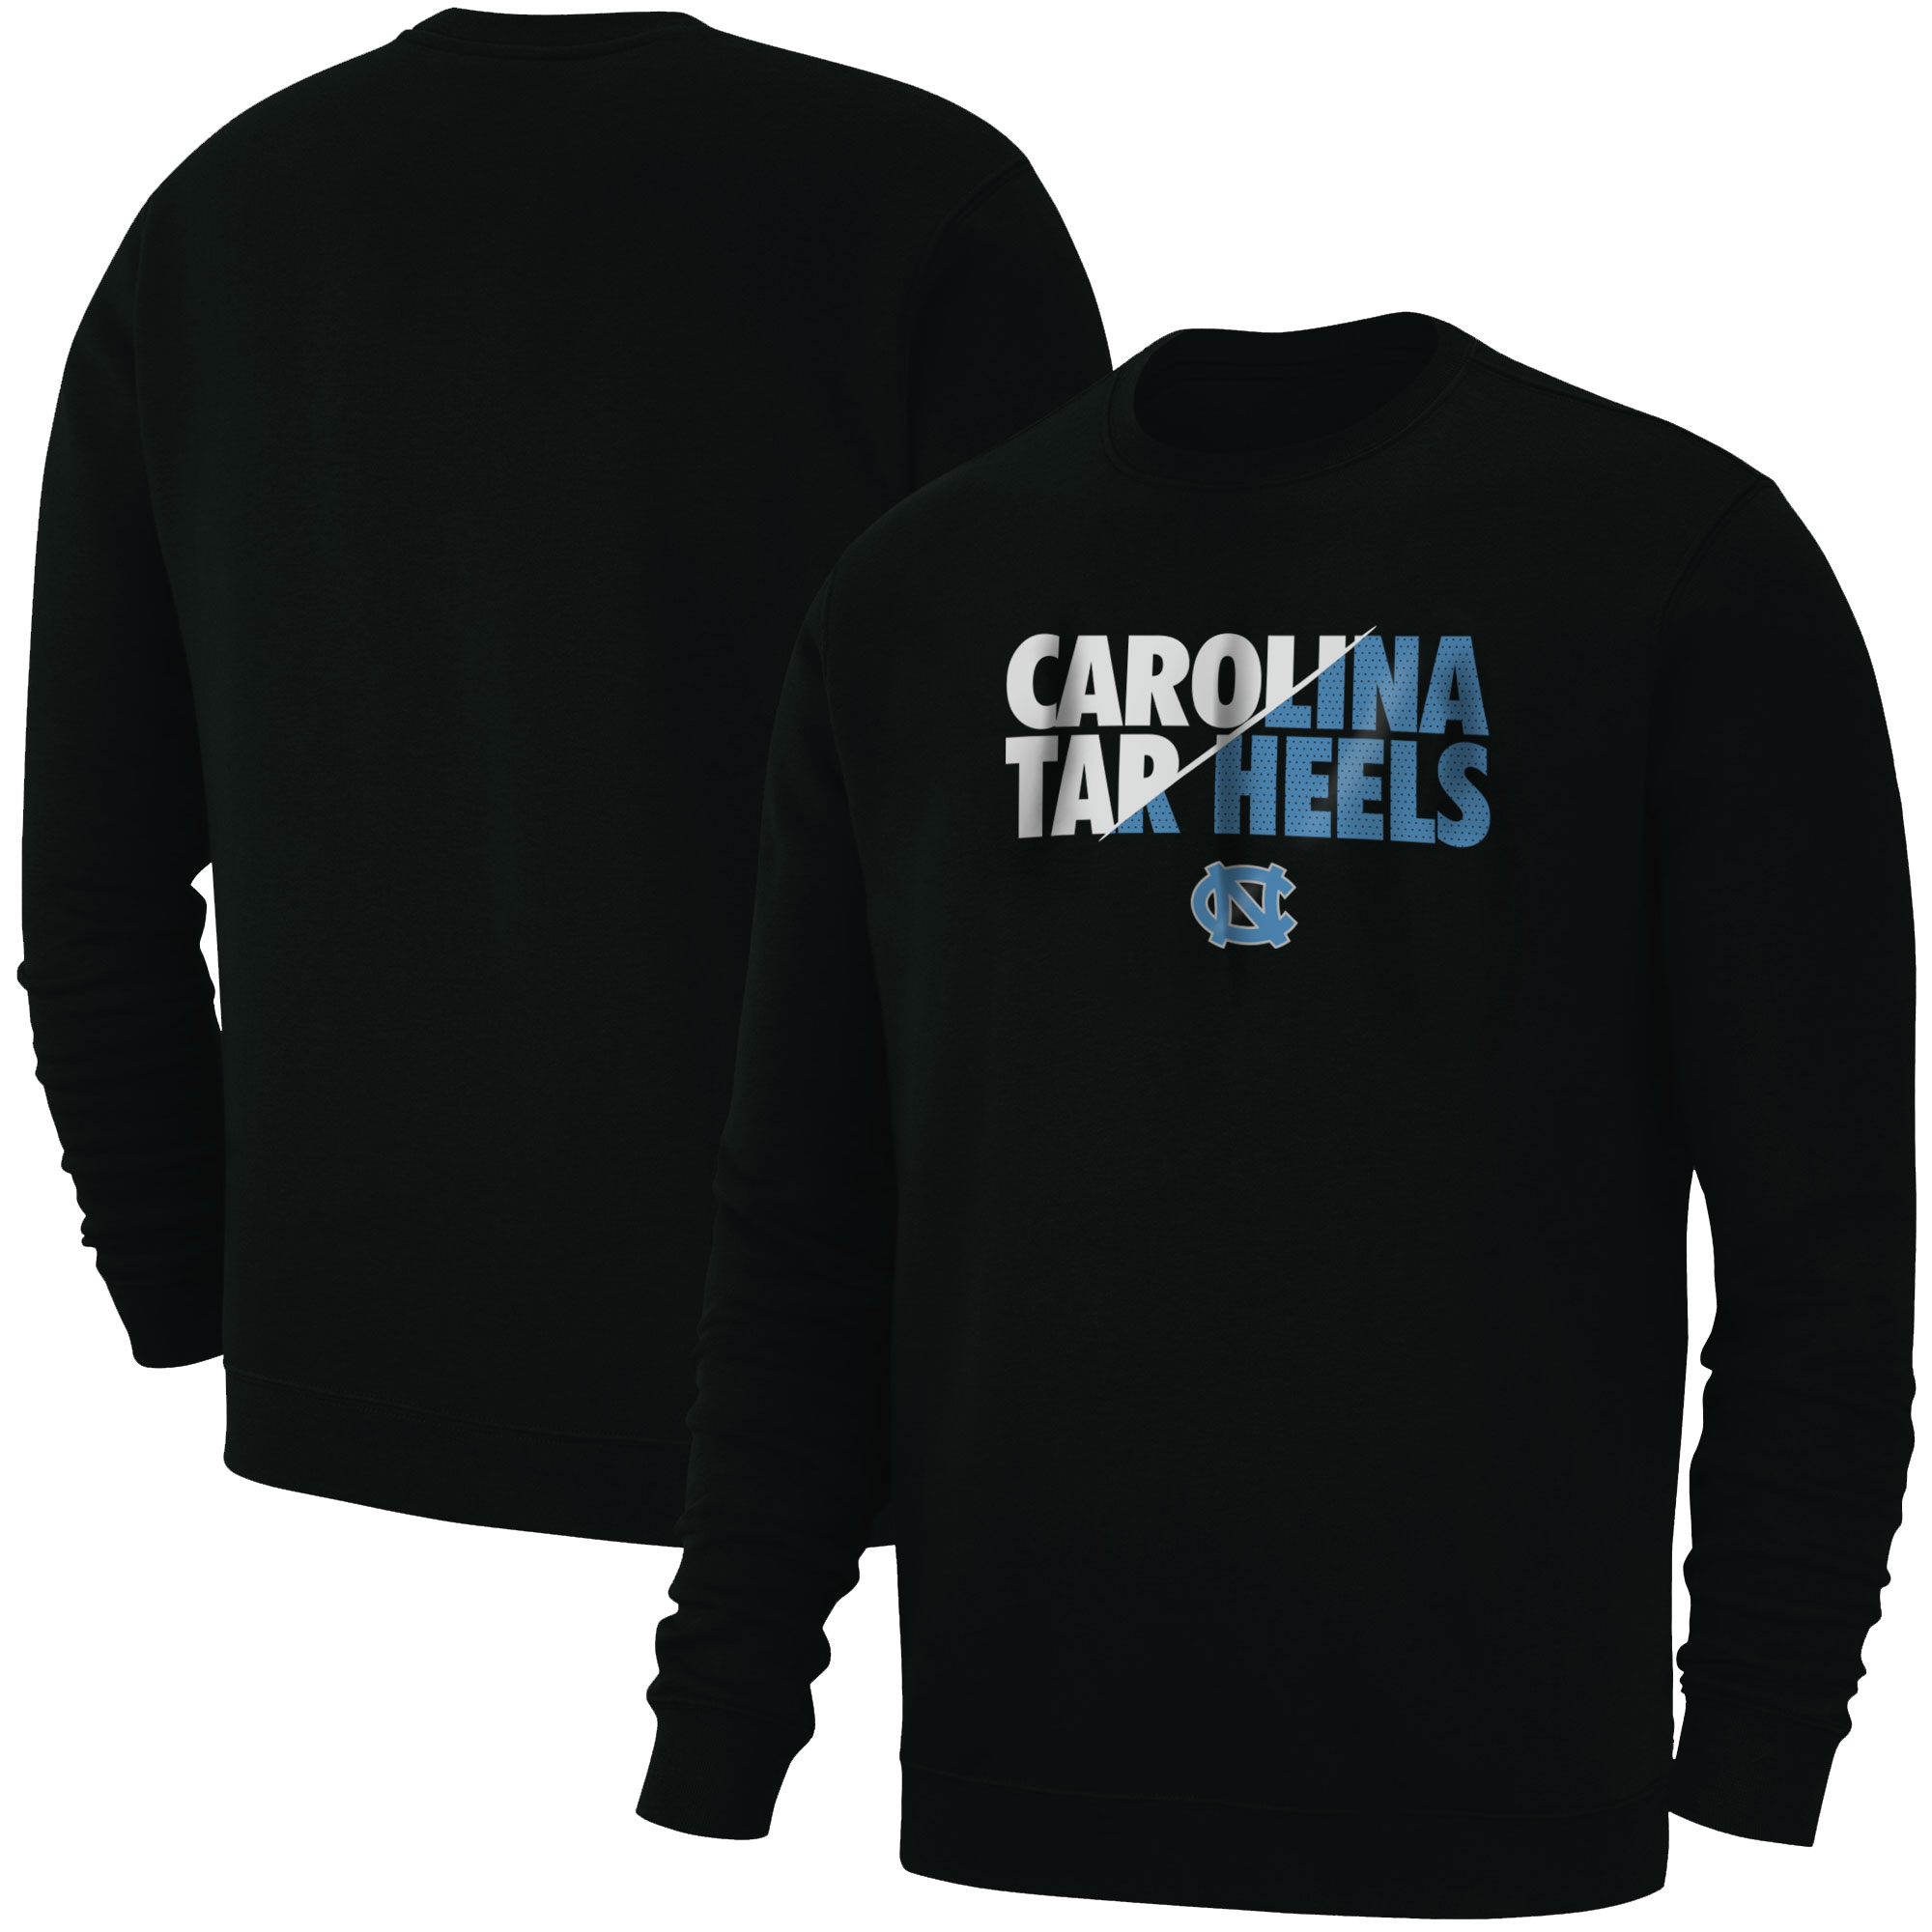 Carolina Tar Heels Basic (BSC-BLU-486-NCAA-CAROLINA-HEELS)